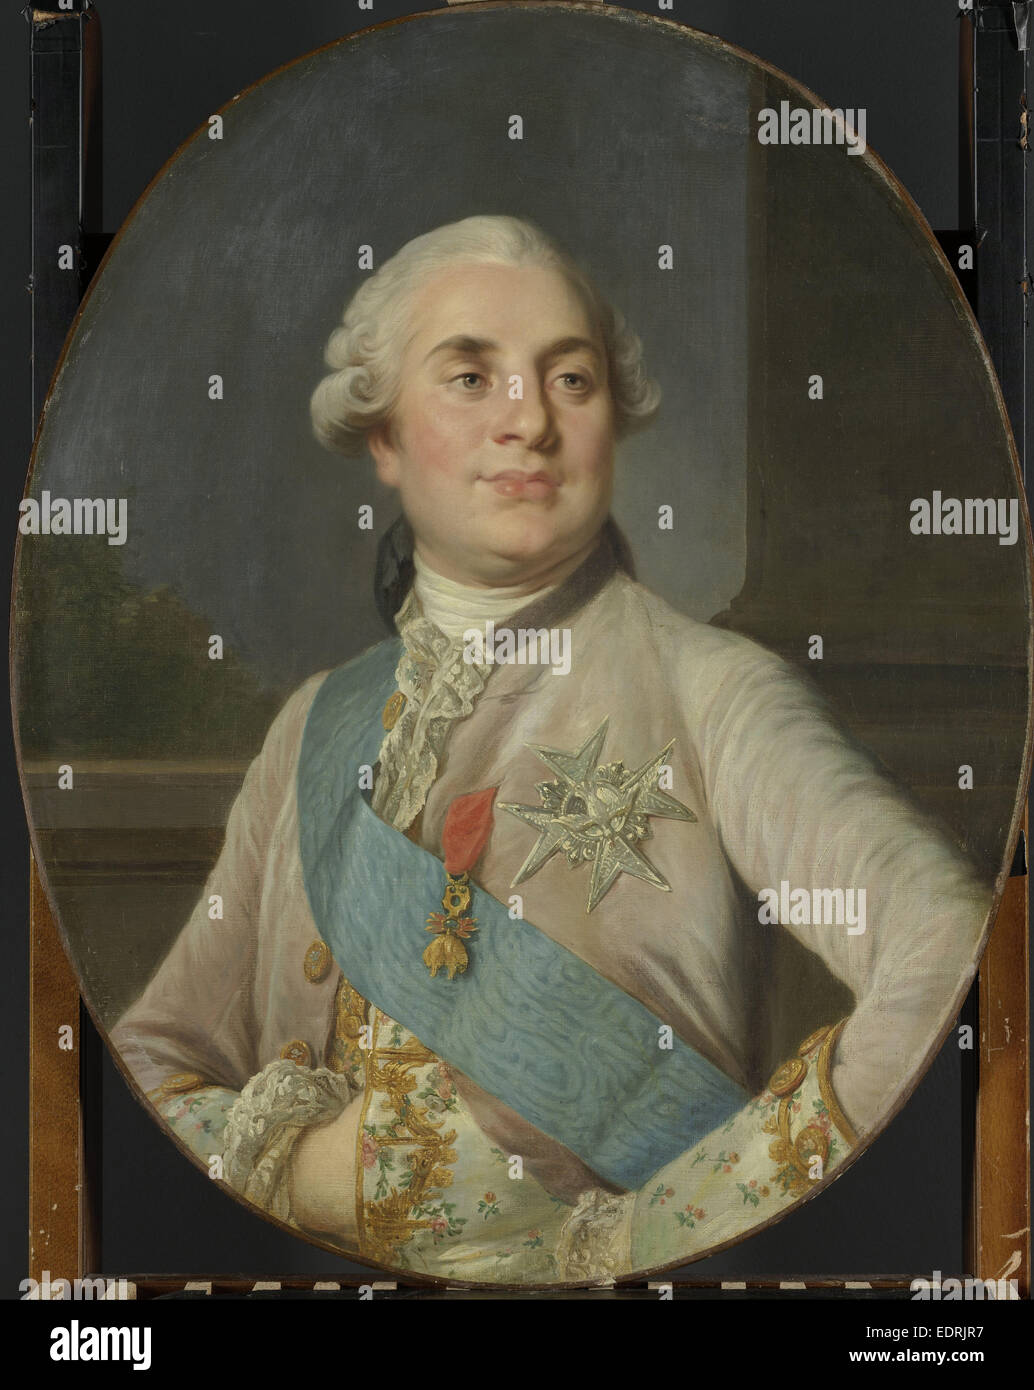 louis xvi of france and indian Louis was born at versailles on 23 august 1754 in 1770, he married marie antoinette, daughter of the emperor and empress of austria, a match intended to consolidate an alliance between france and.